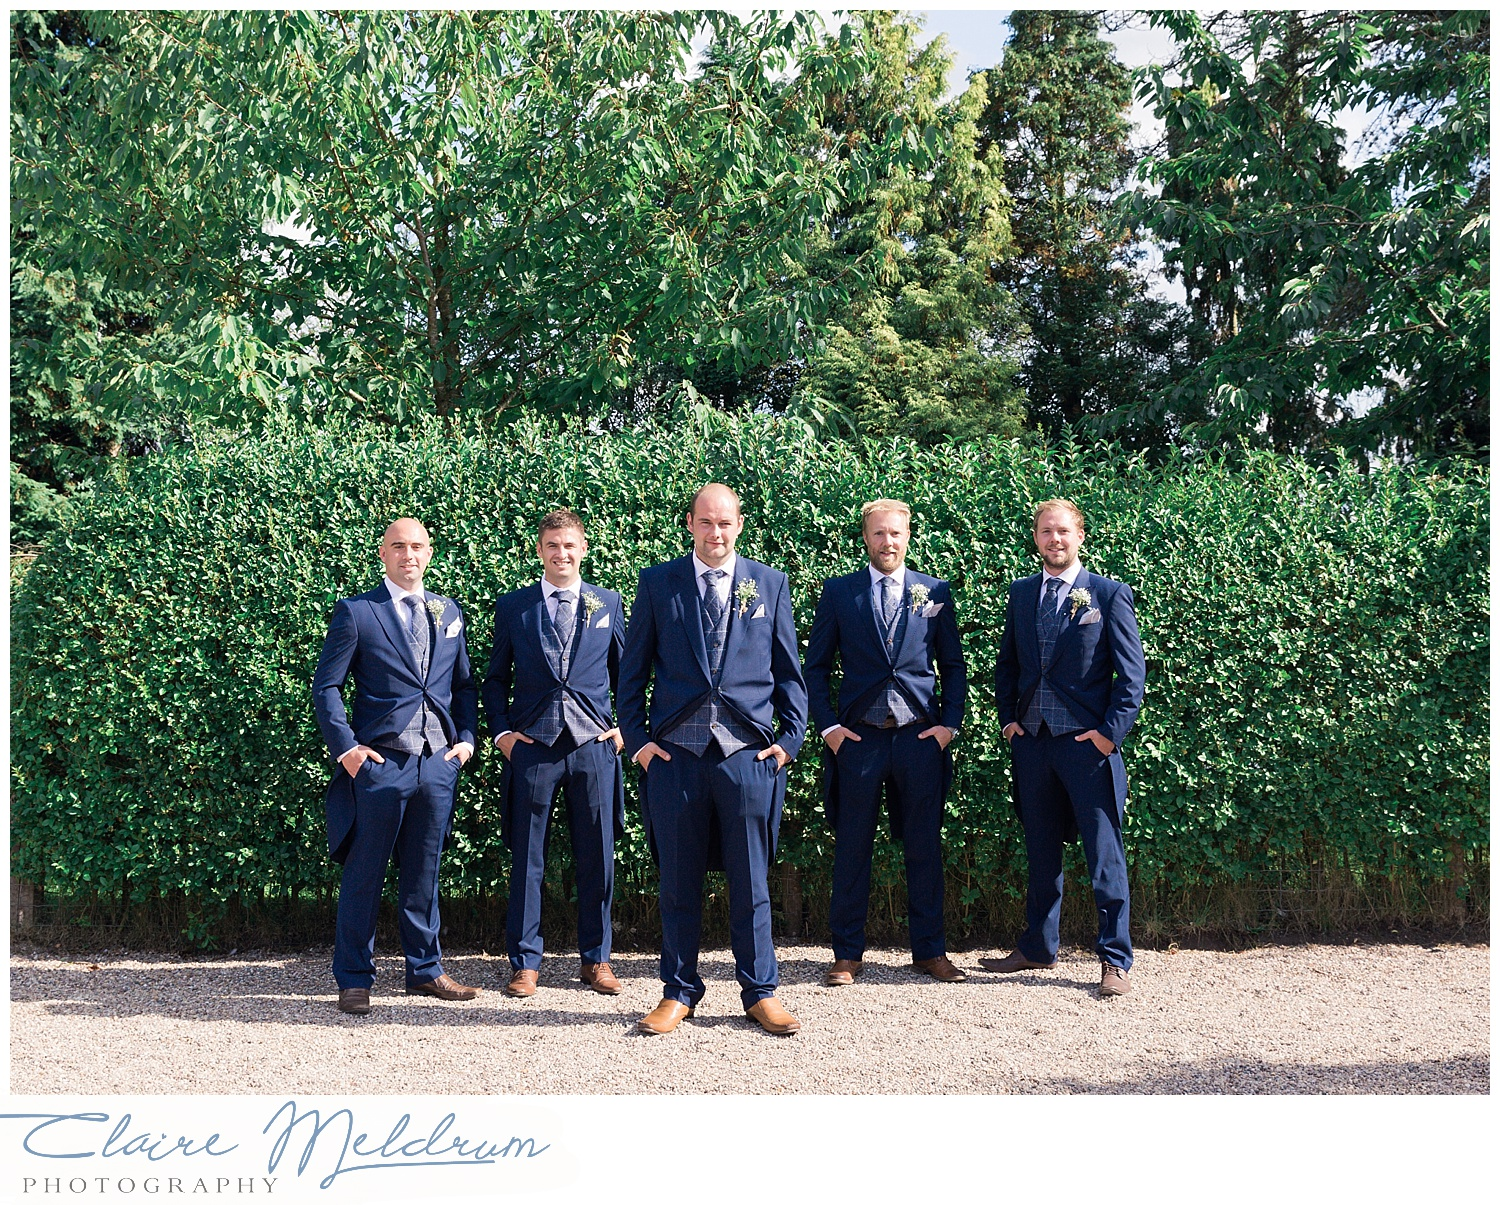 Claire Meldrum Photography. Groomsmen Uttoxeter Staffordshire